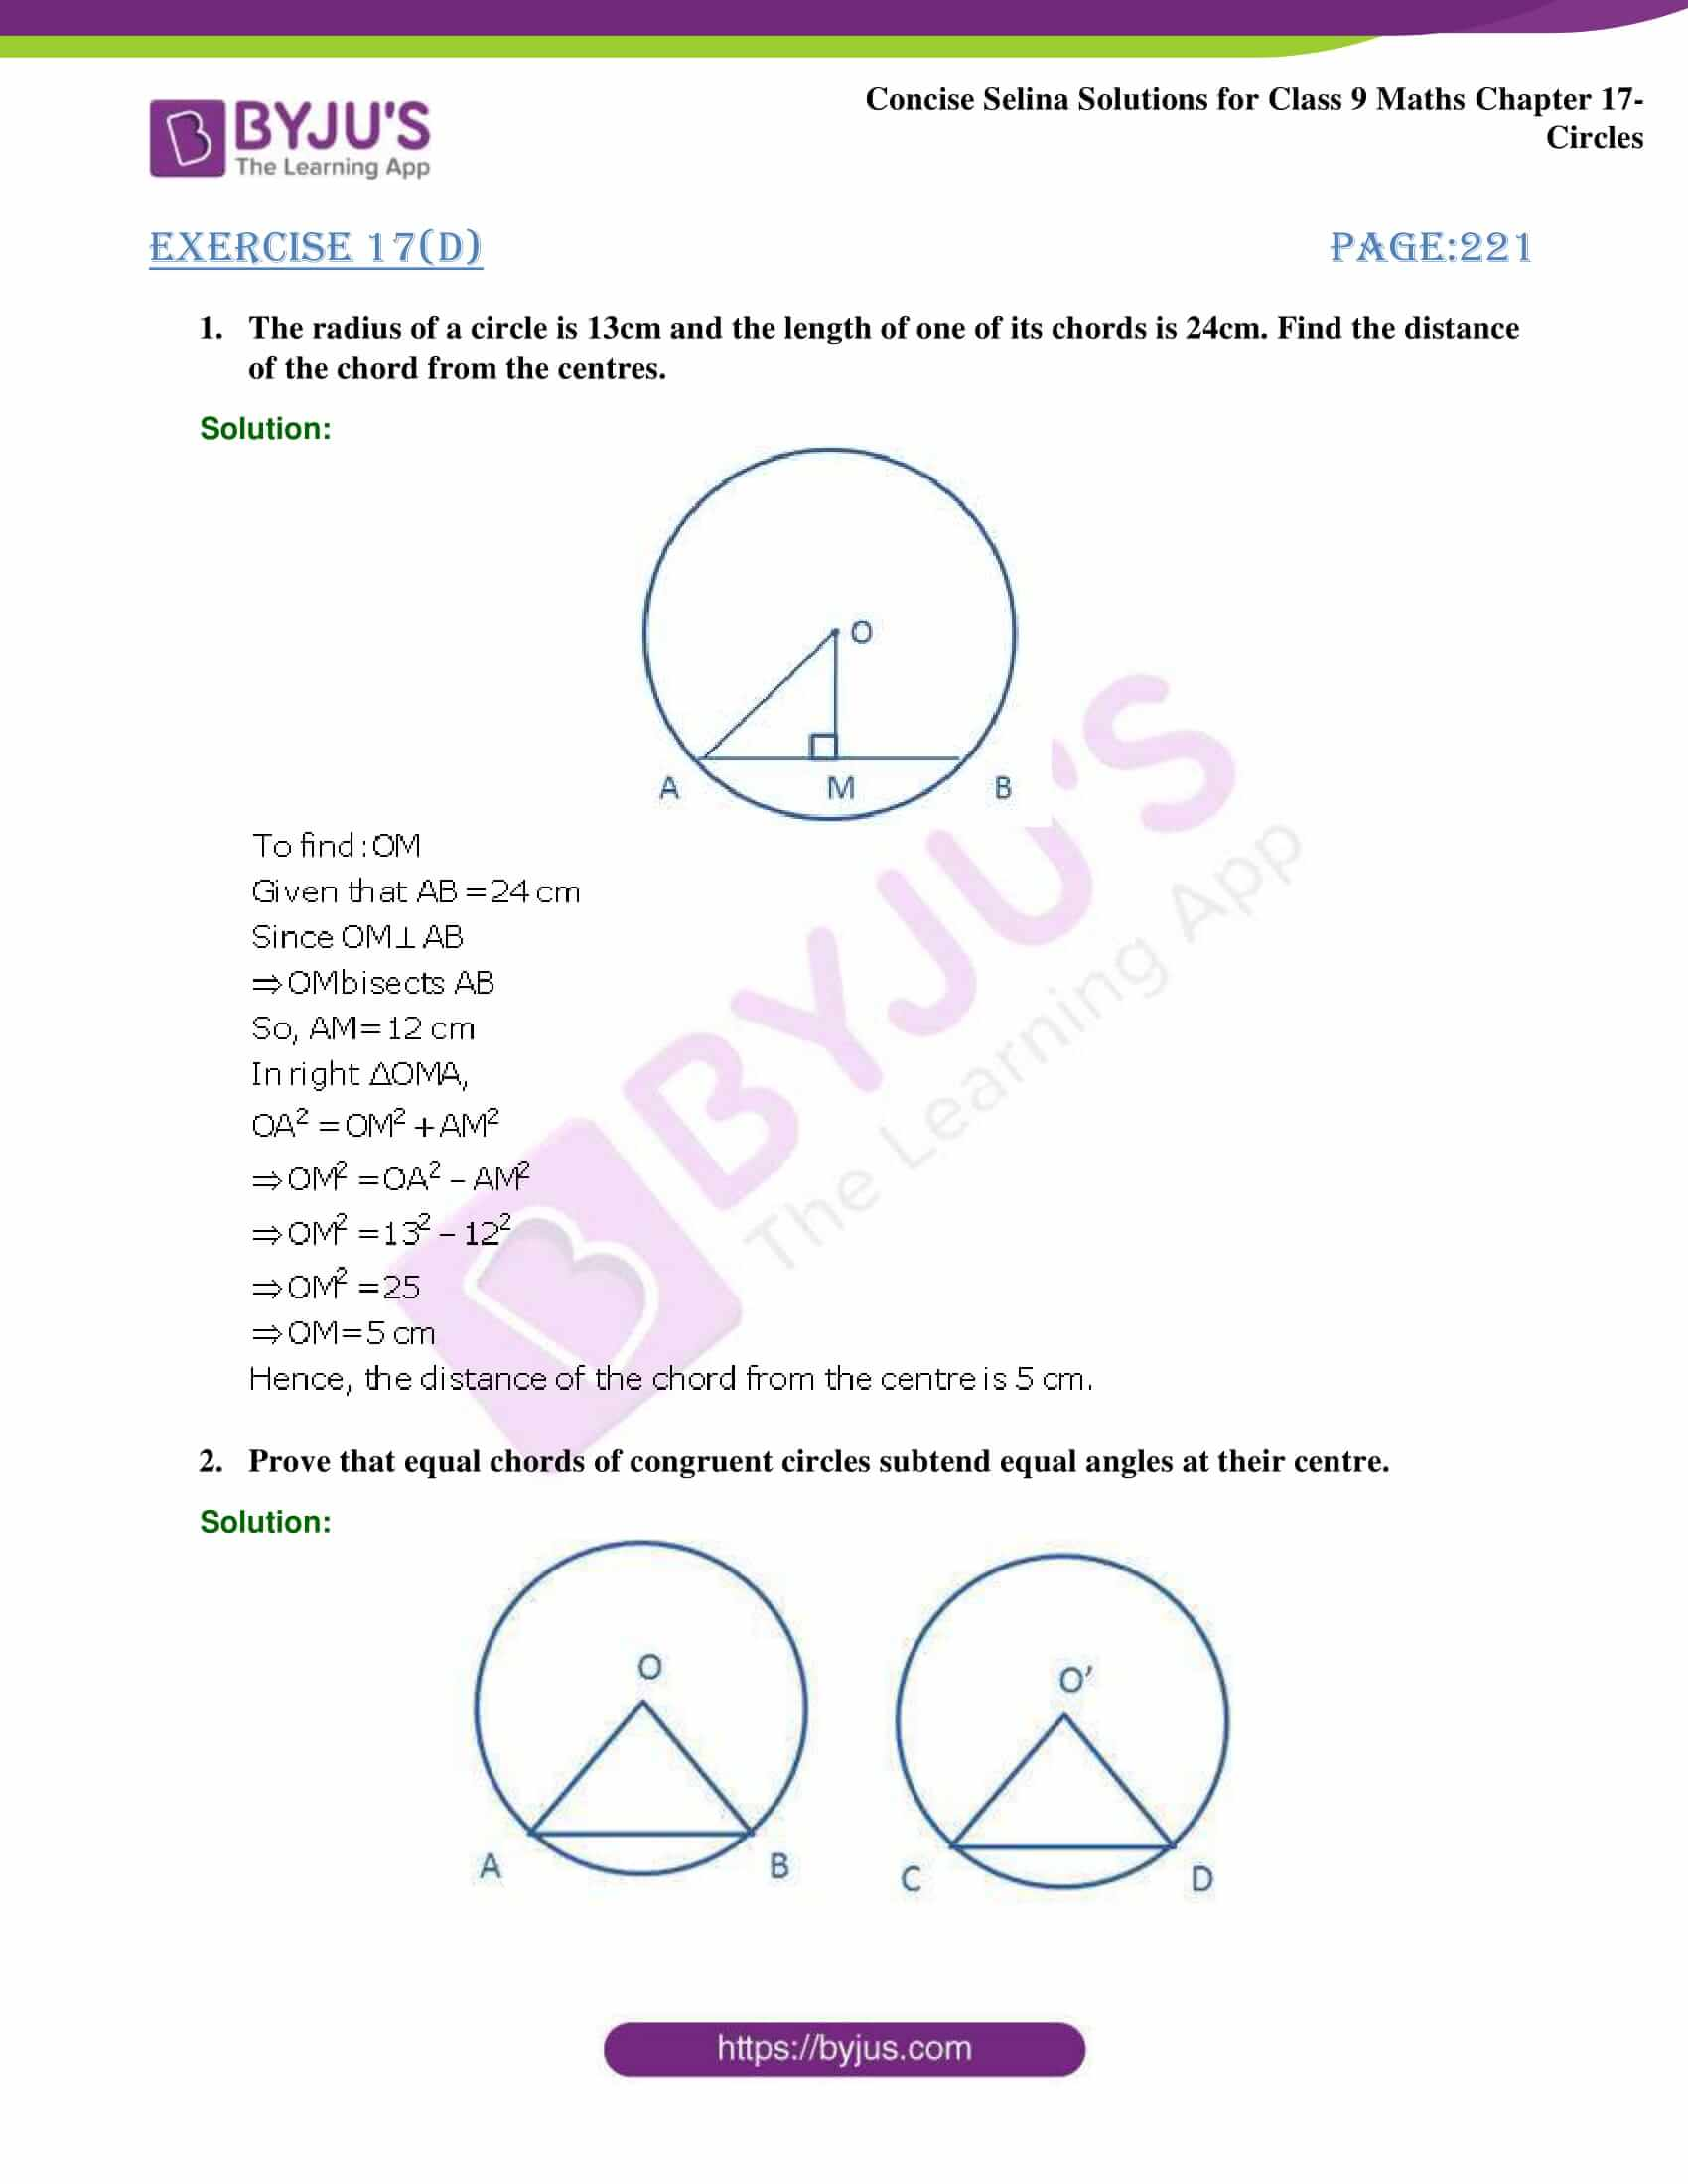 Concise Selina Solutions Class 9 Maths Chapter 17 Circles part 29